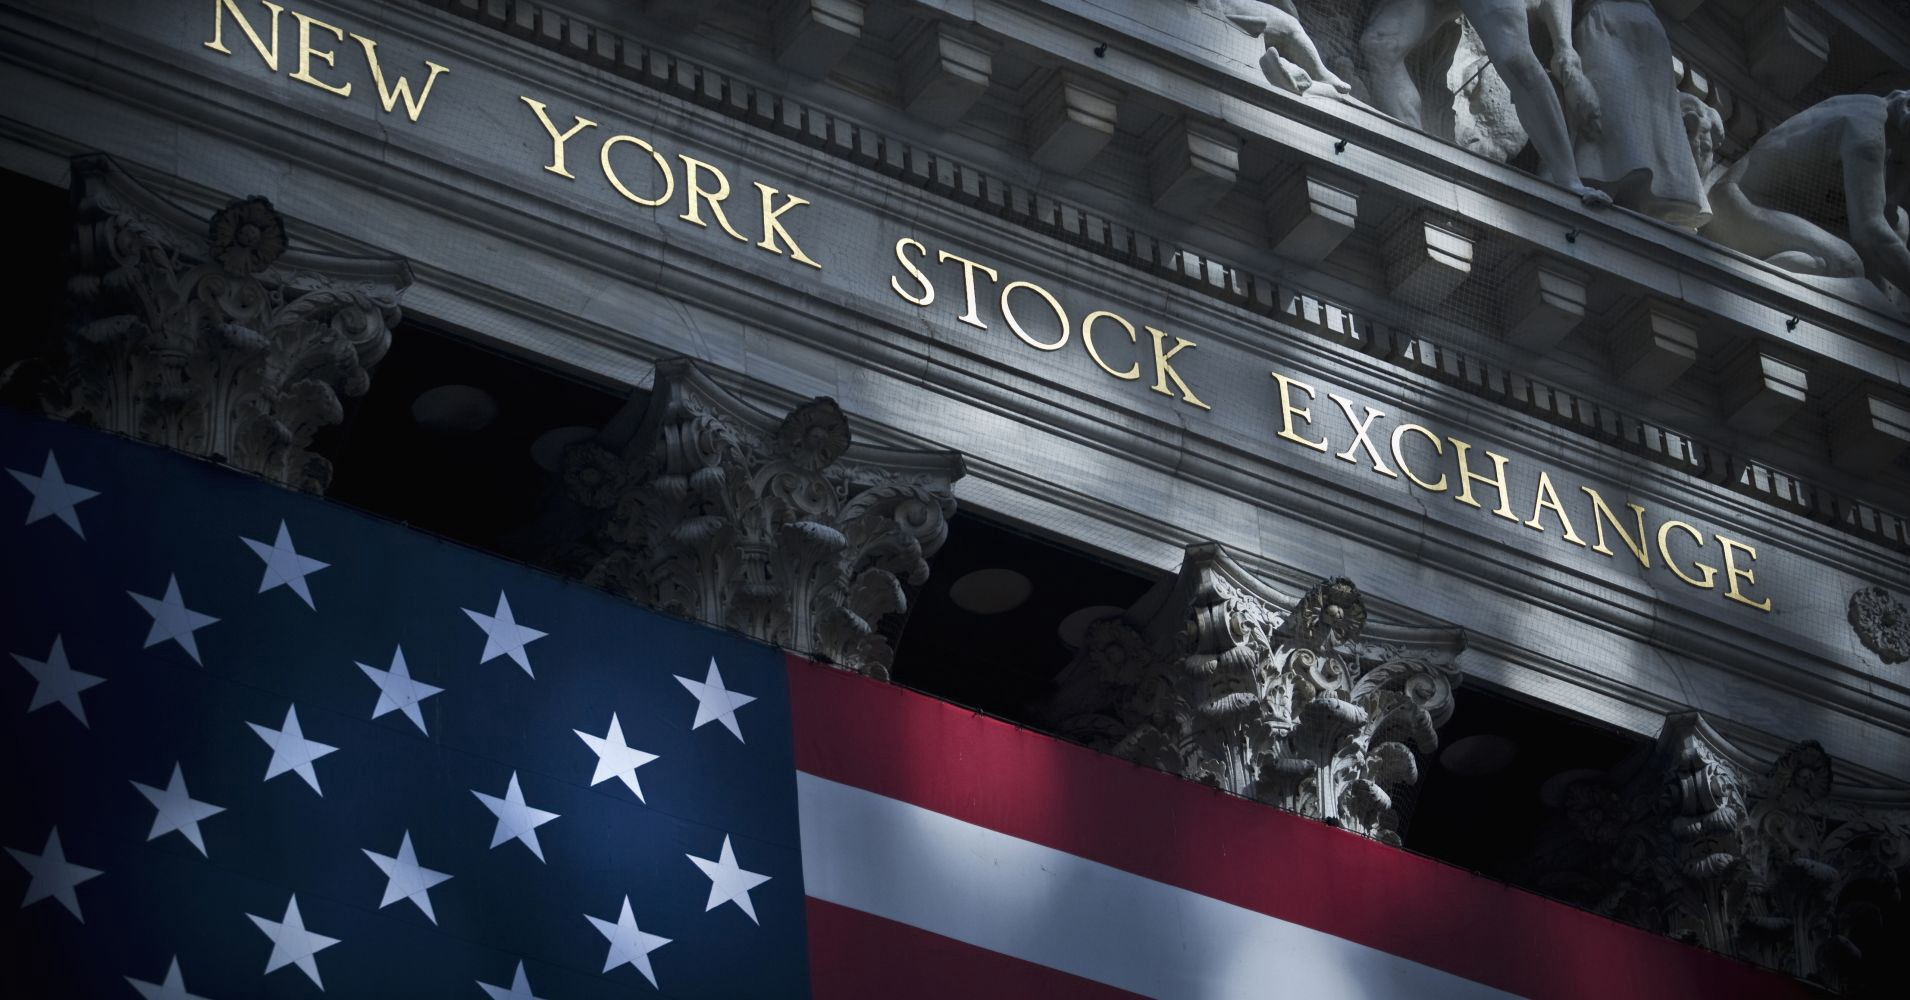 ICE, the owner is NYSE just announced a crypto platform bringing crypto to Wall Street. Smart contracts will bring Wall Street to crypto.